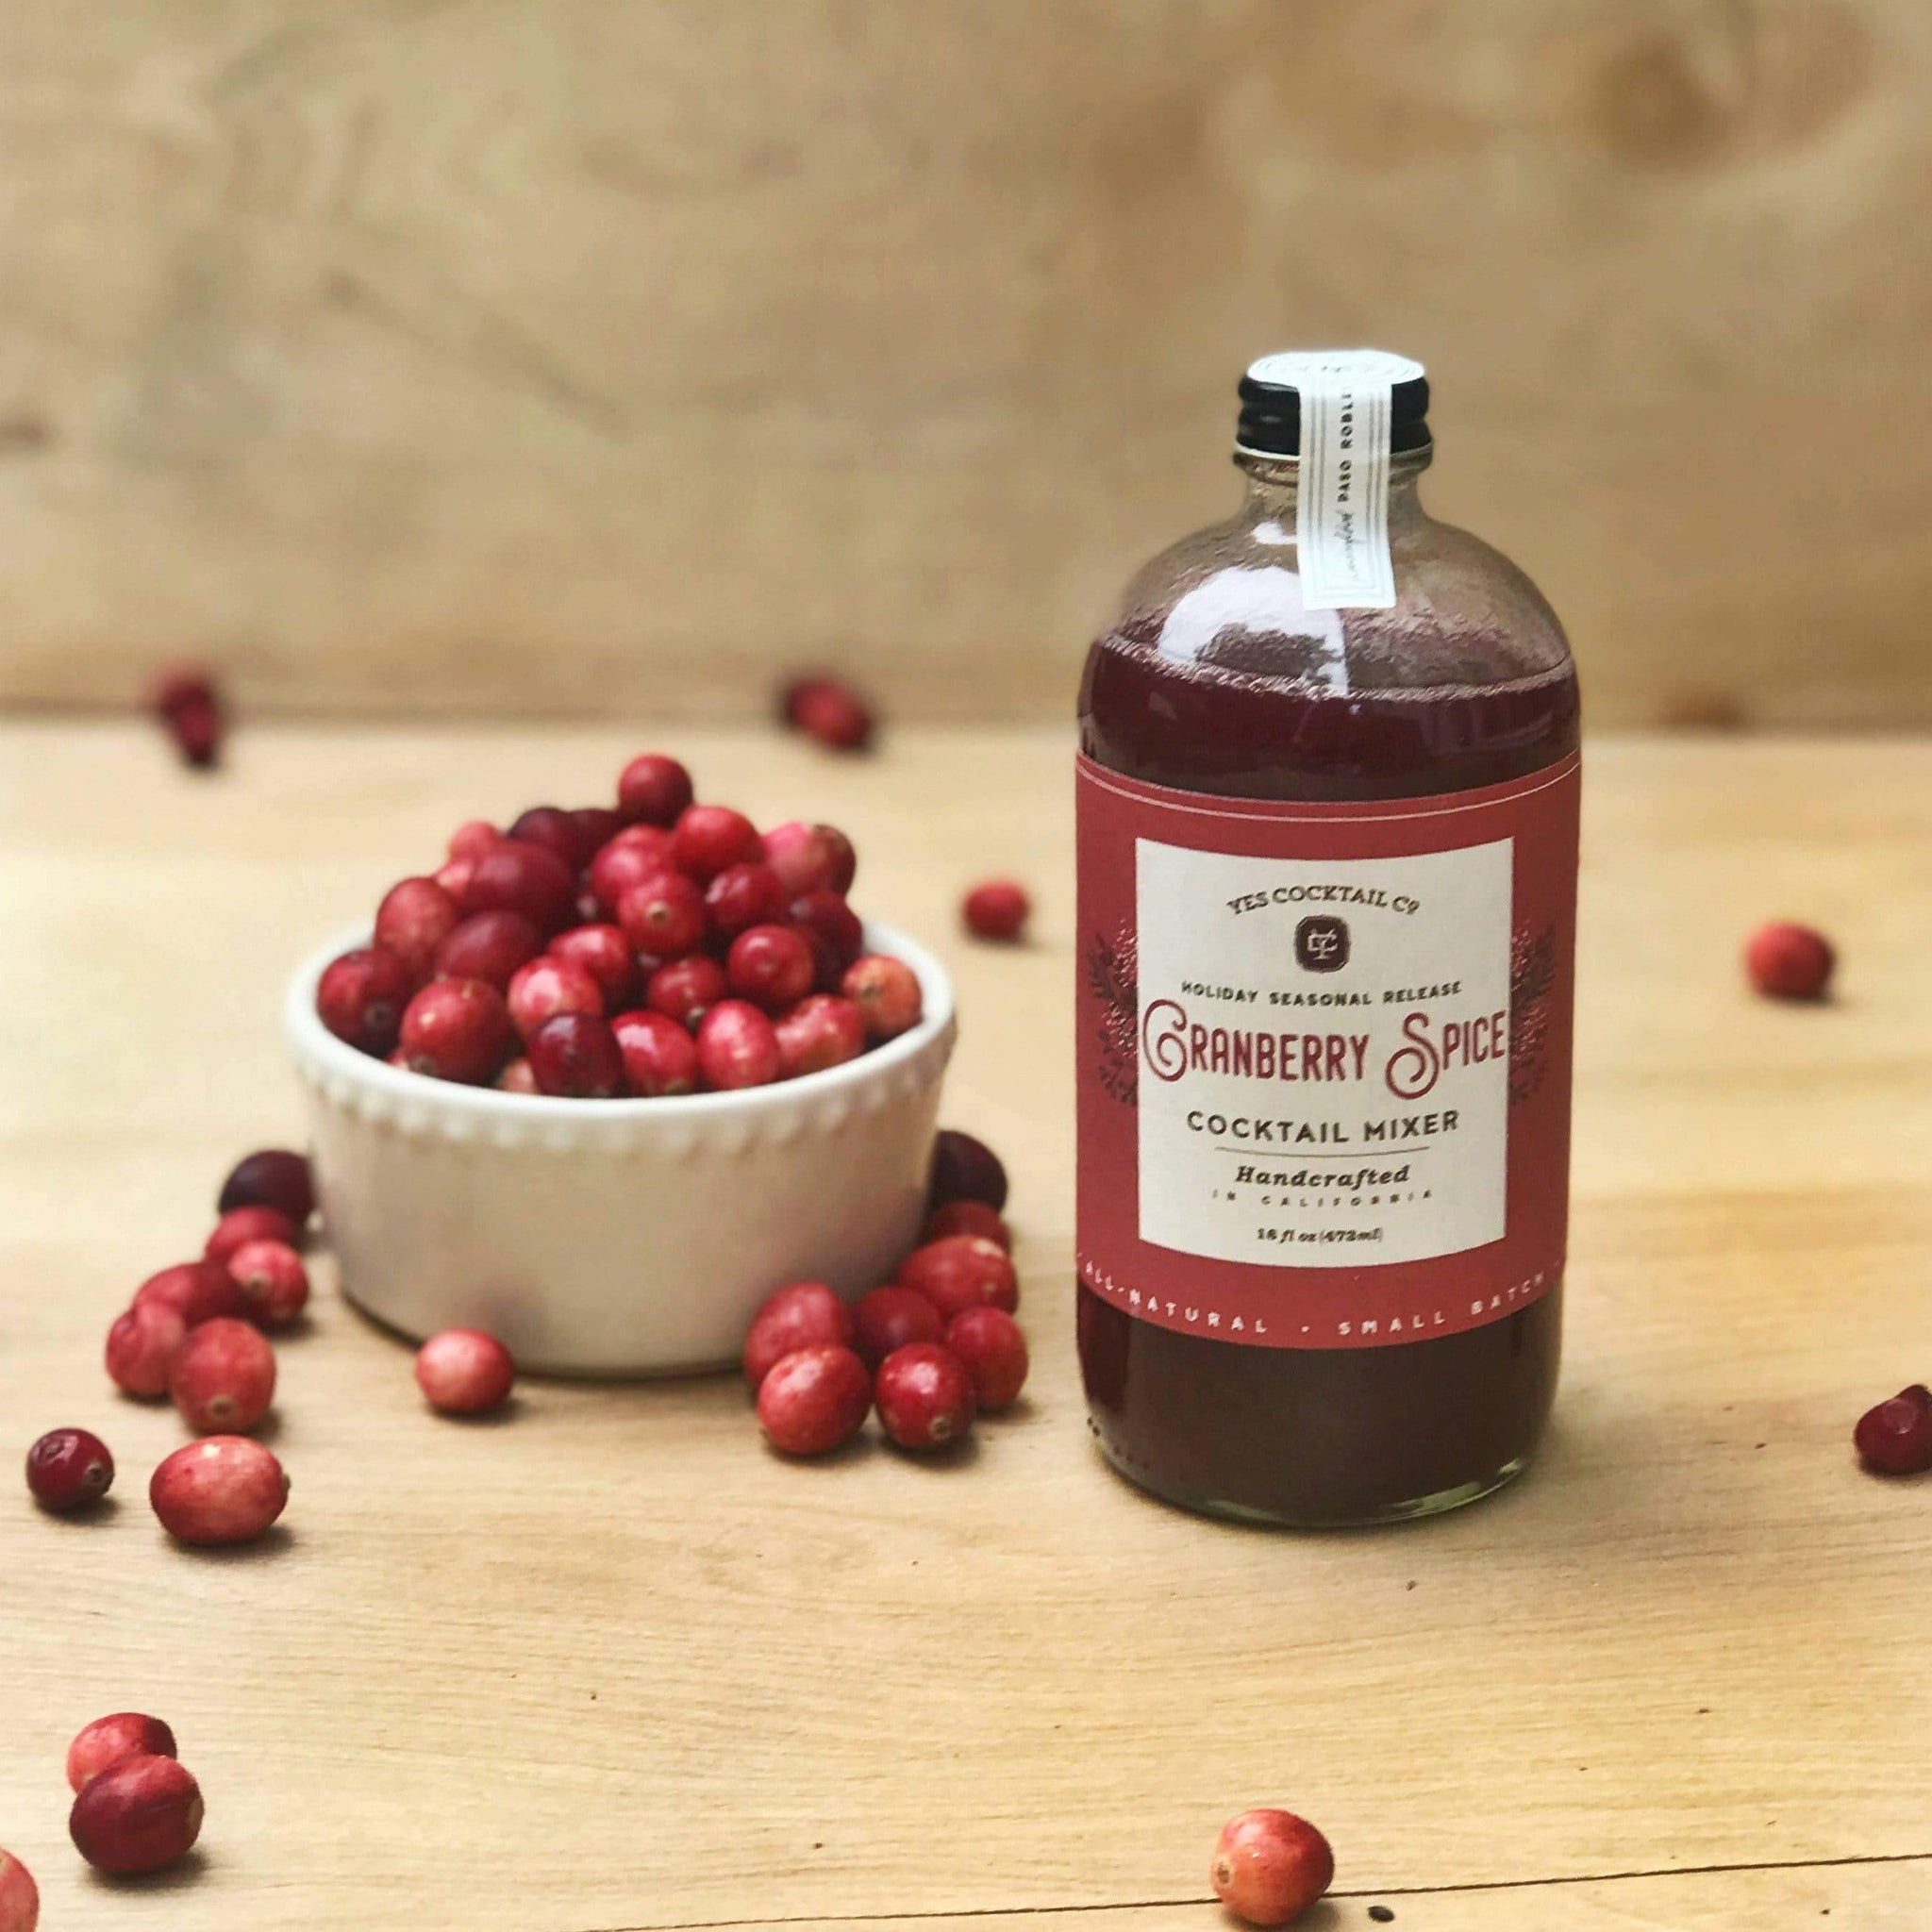 Limited Edition Cranberry Spice Cocktail Mixer